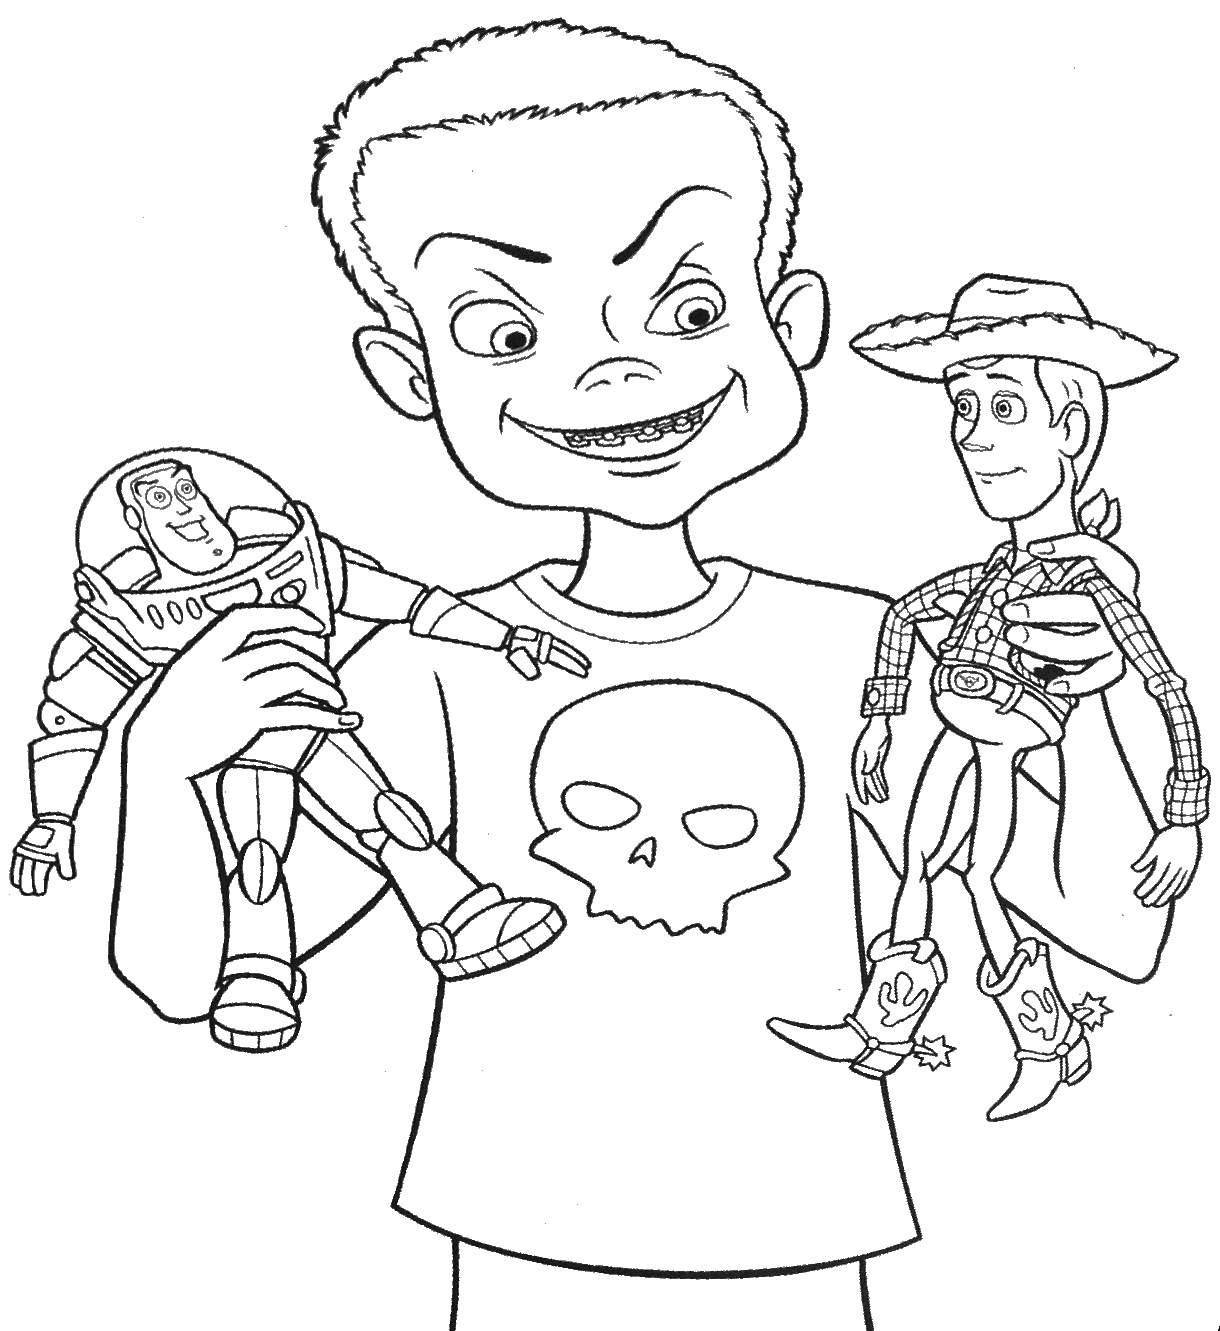 coloring pages for kids toy story printable coloring pages ...